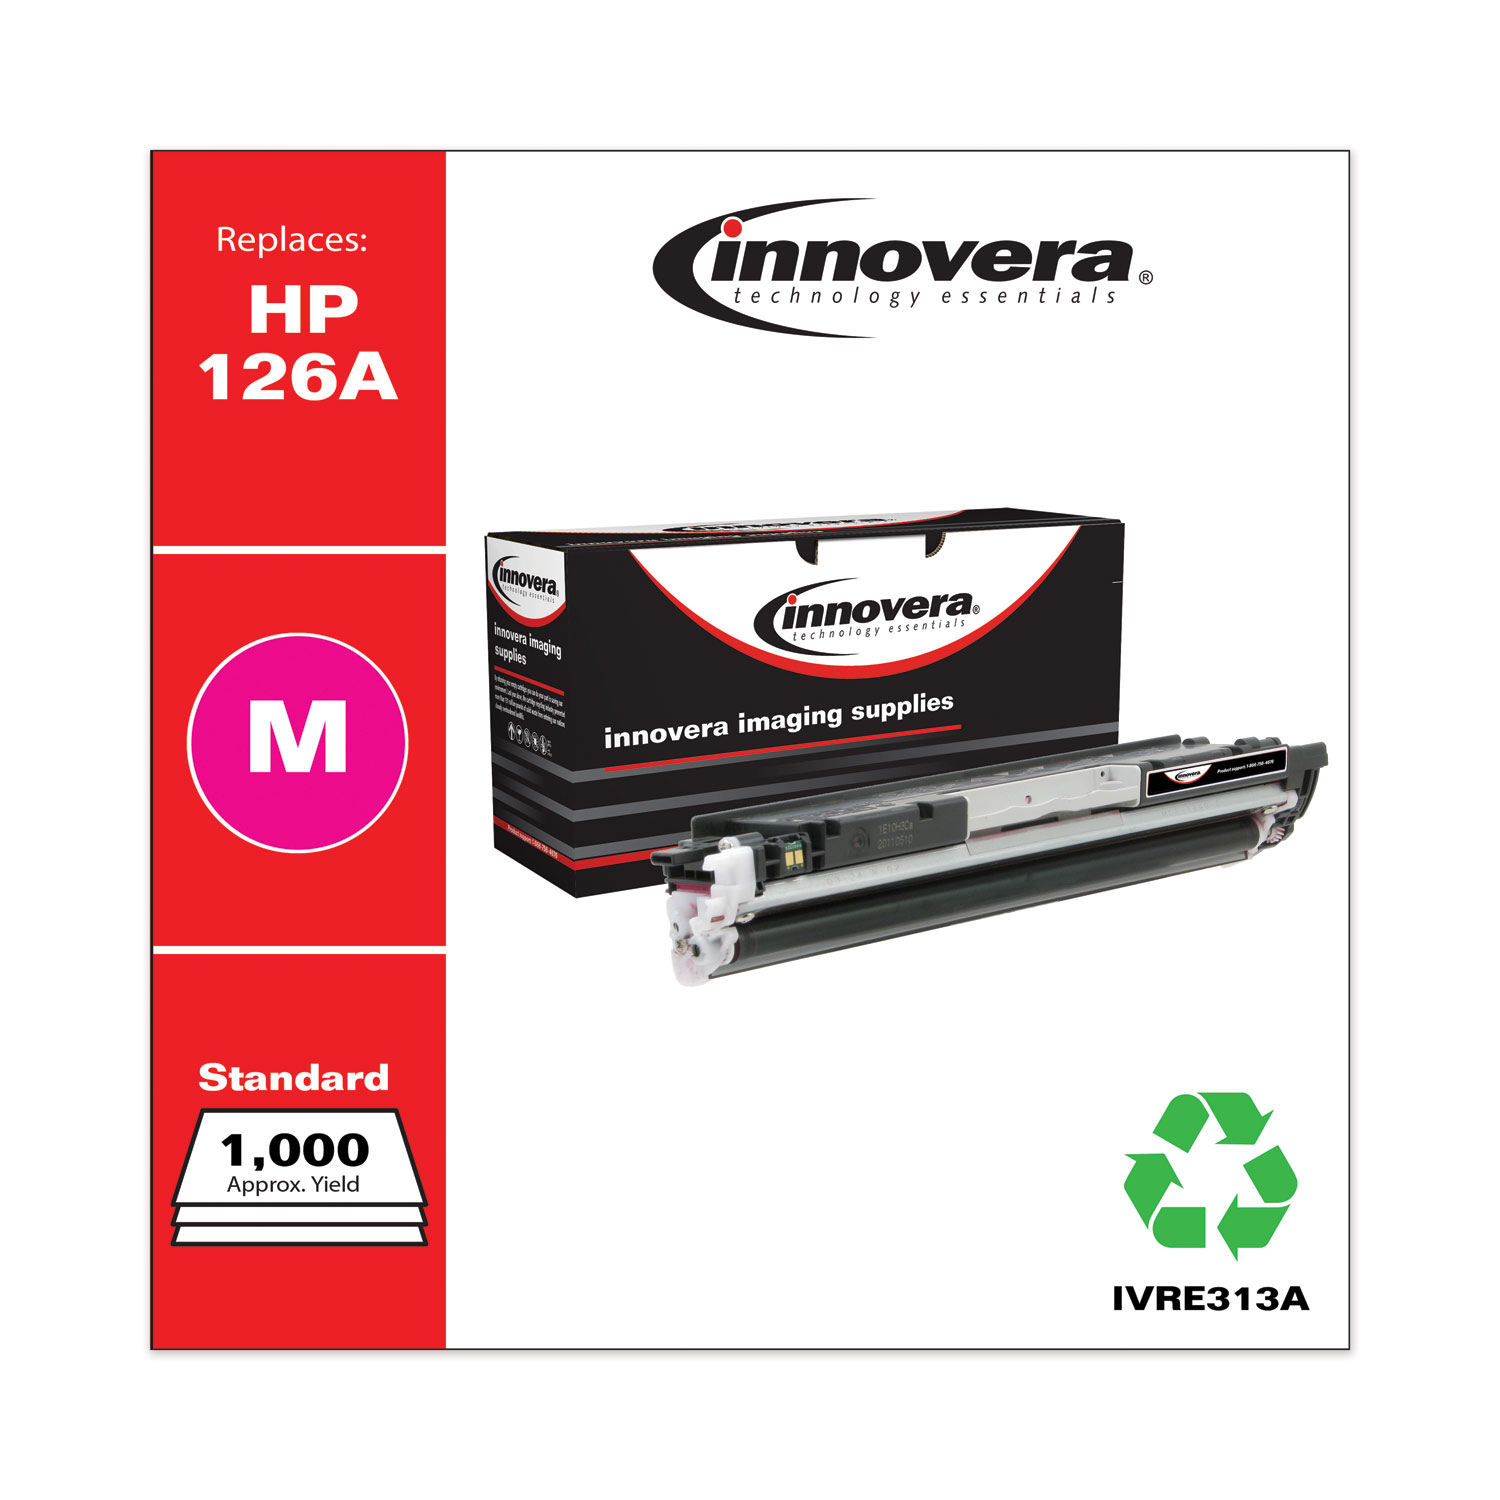 Remanufactured Magenta Toner, Replacement for HP 126A (CE313A), 1,000 Page-Yield IVRE313A